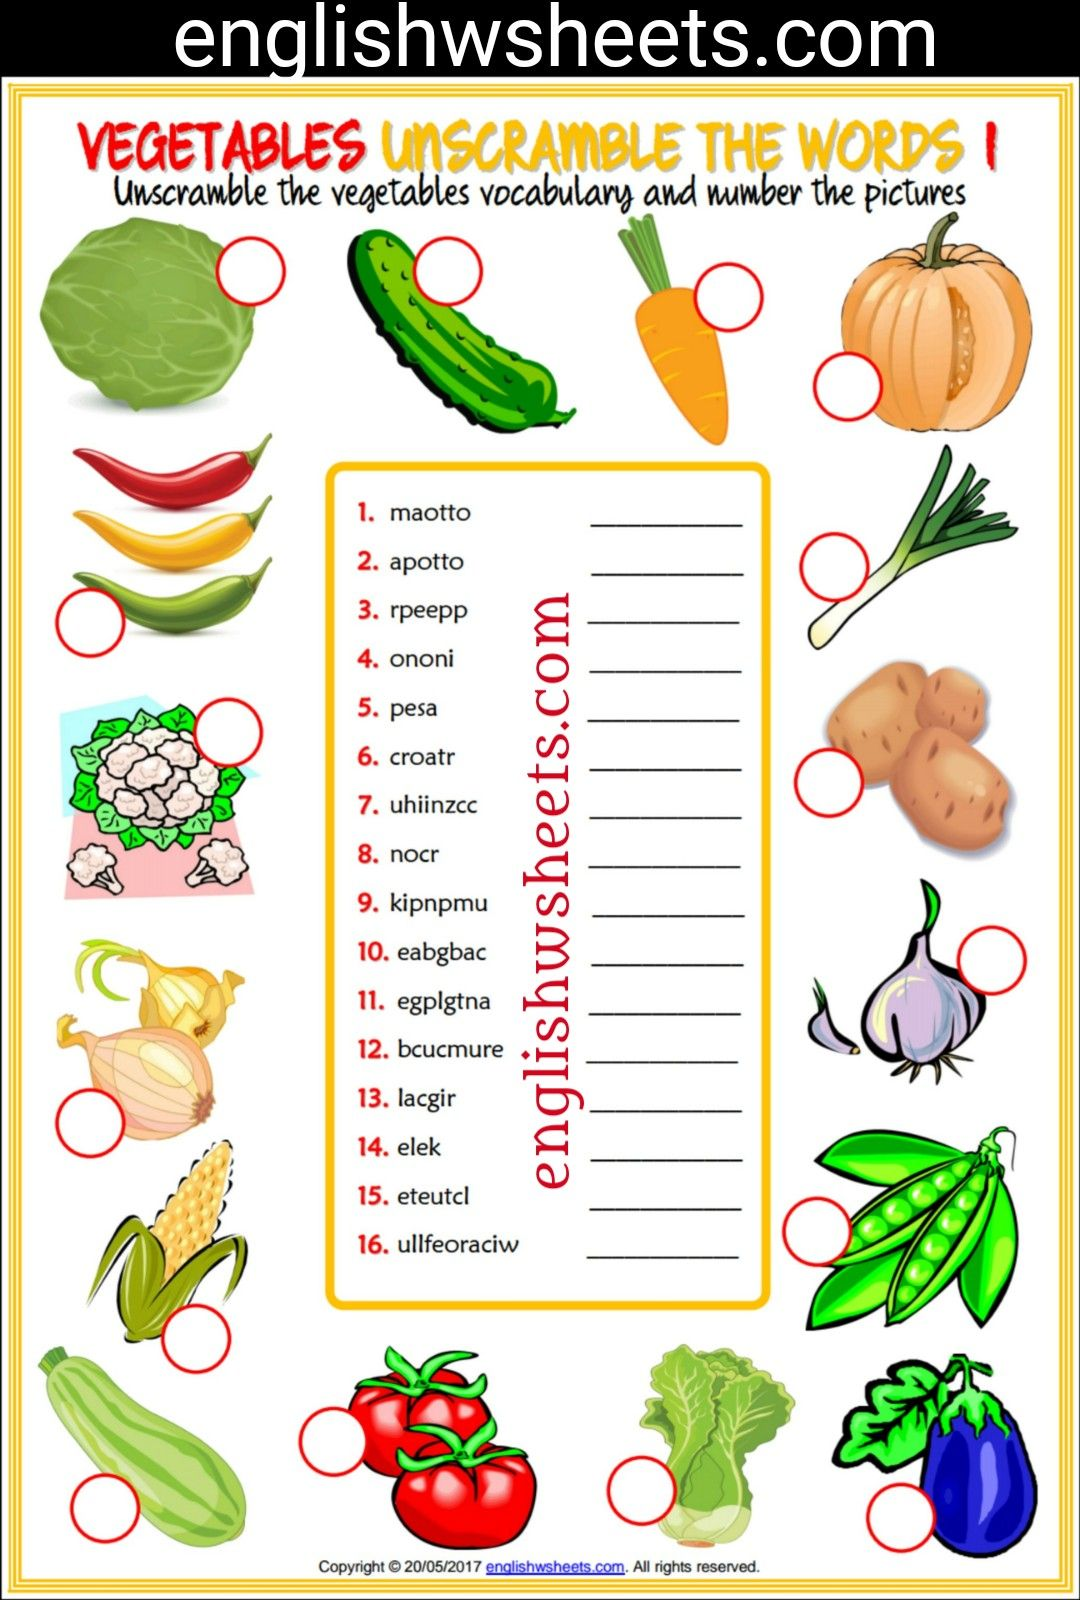 Vegetables Esl Printable Unscramble The Words Worksheets For Kids Vegetables Esl Printable